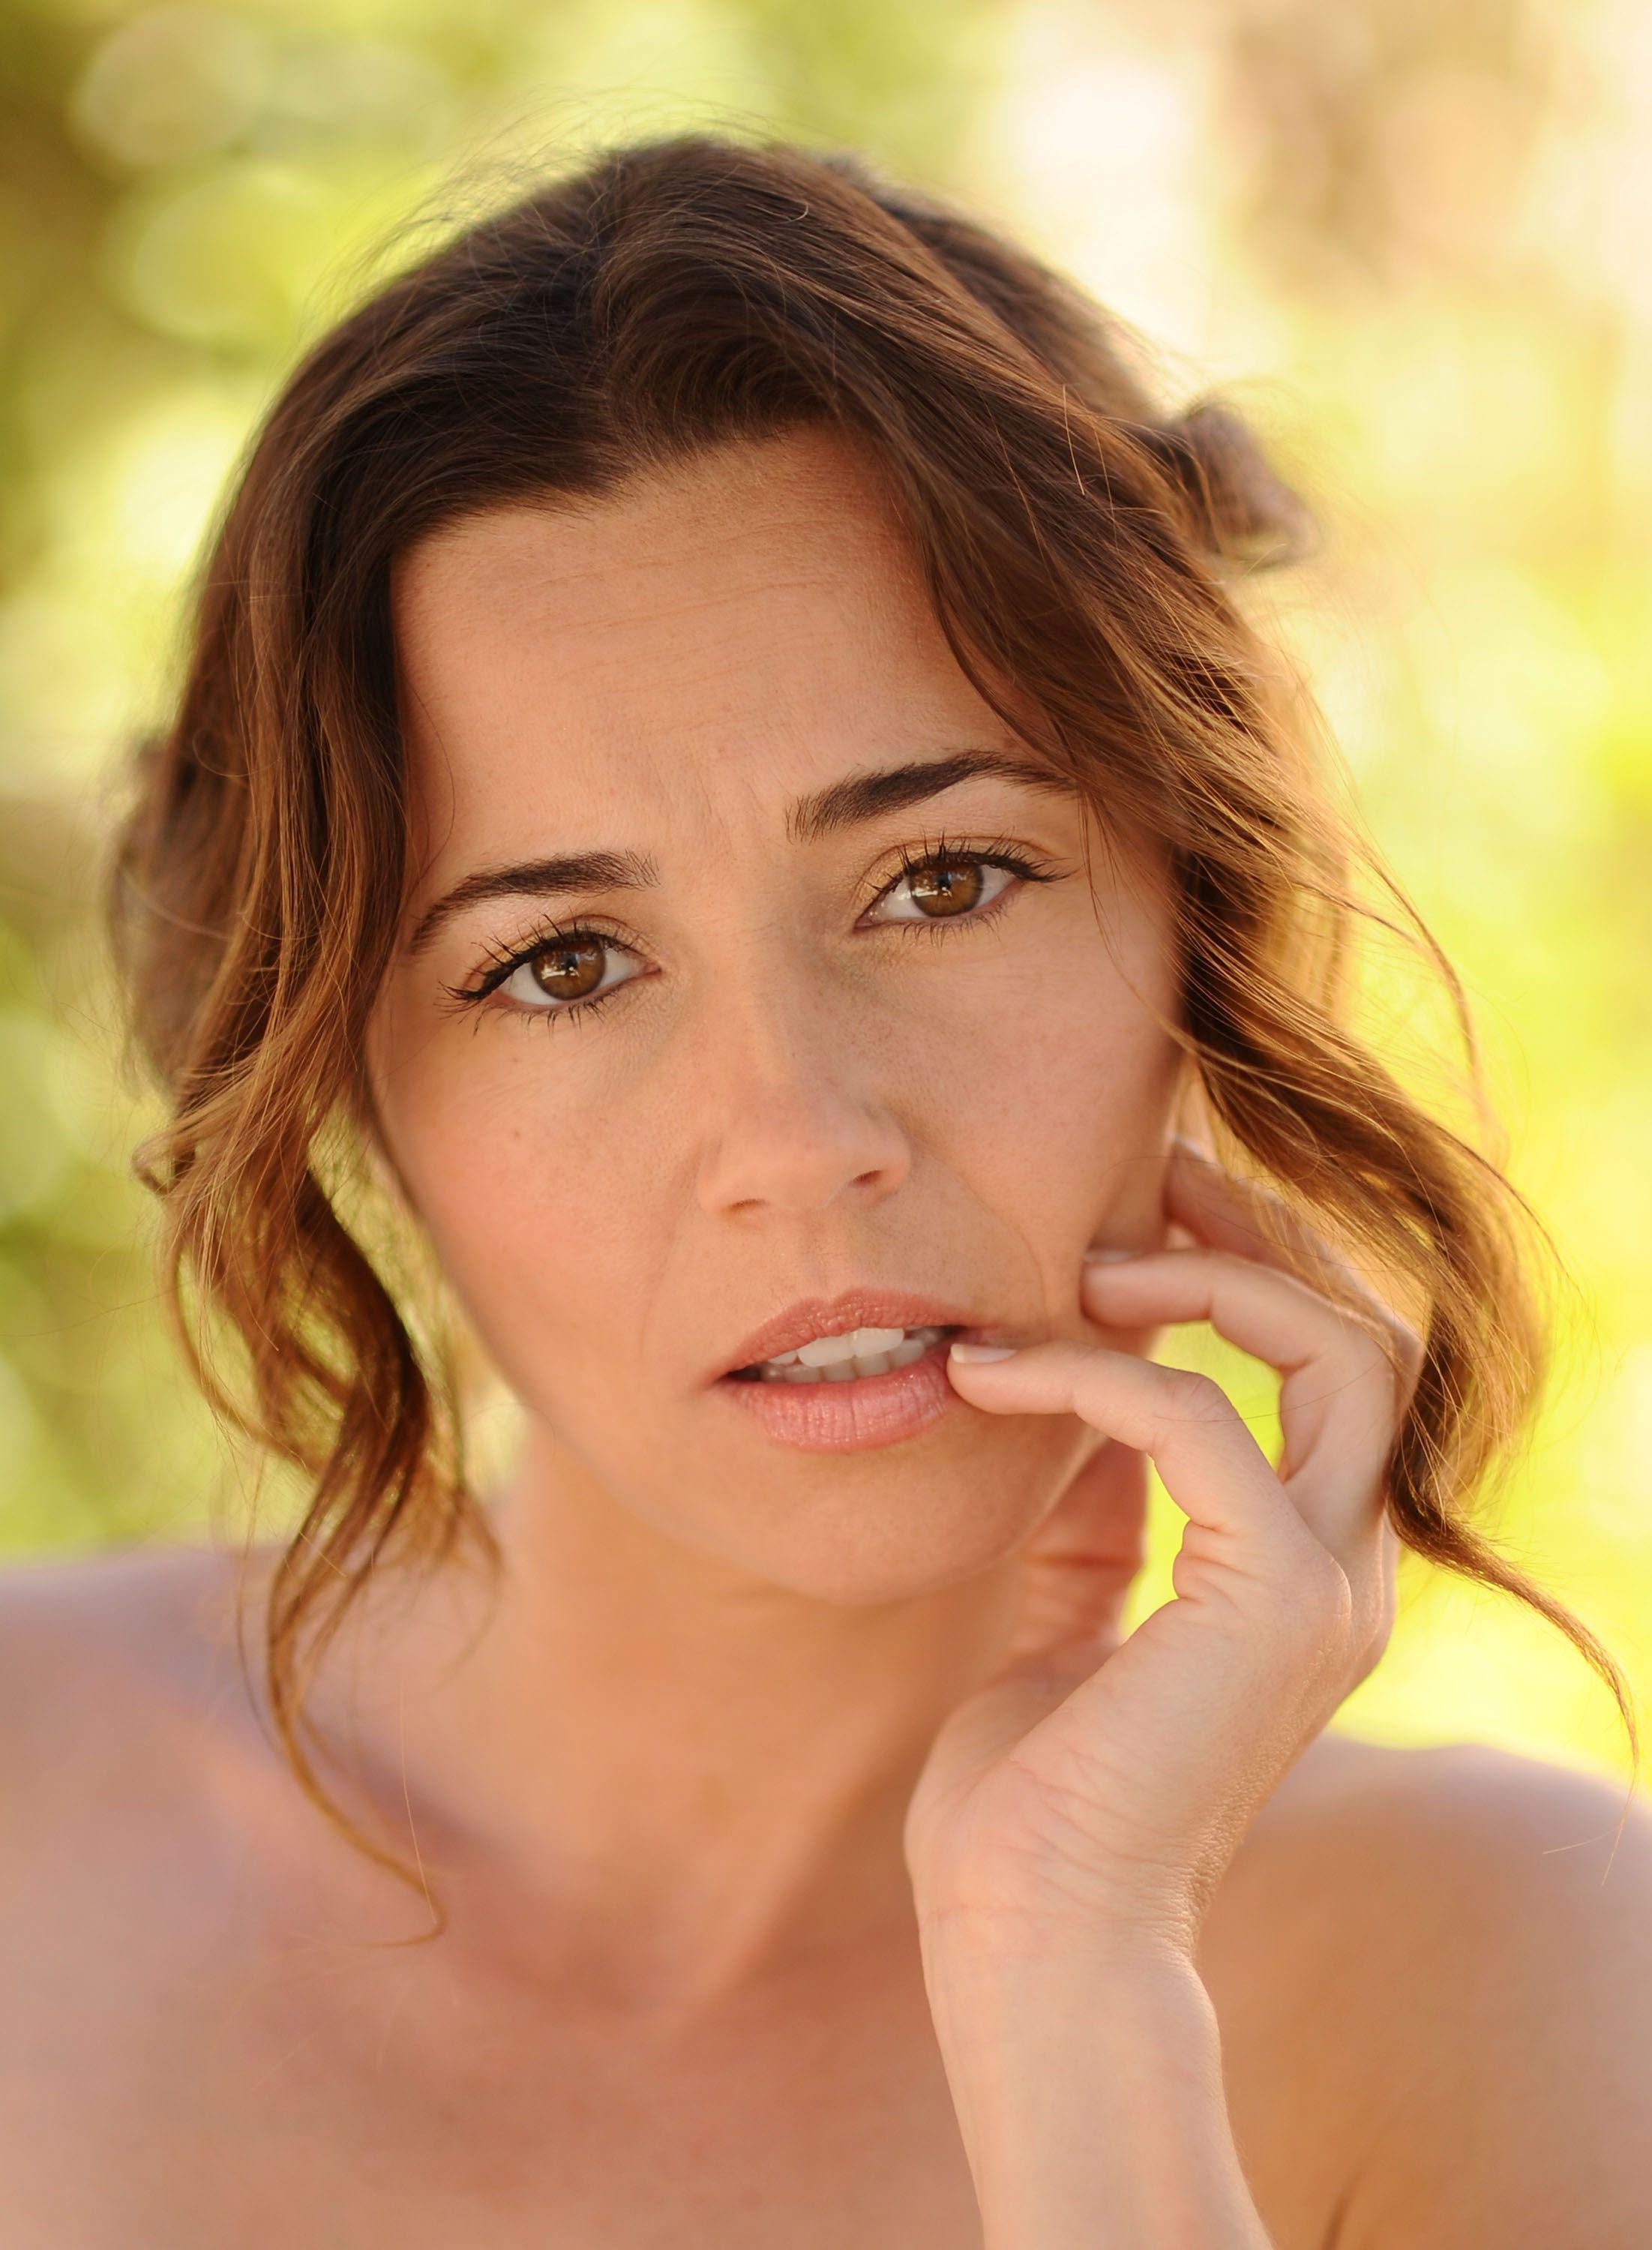 Linda Cardellini Wallpapers - Wallpaper Cave